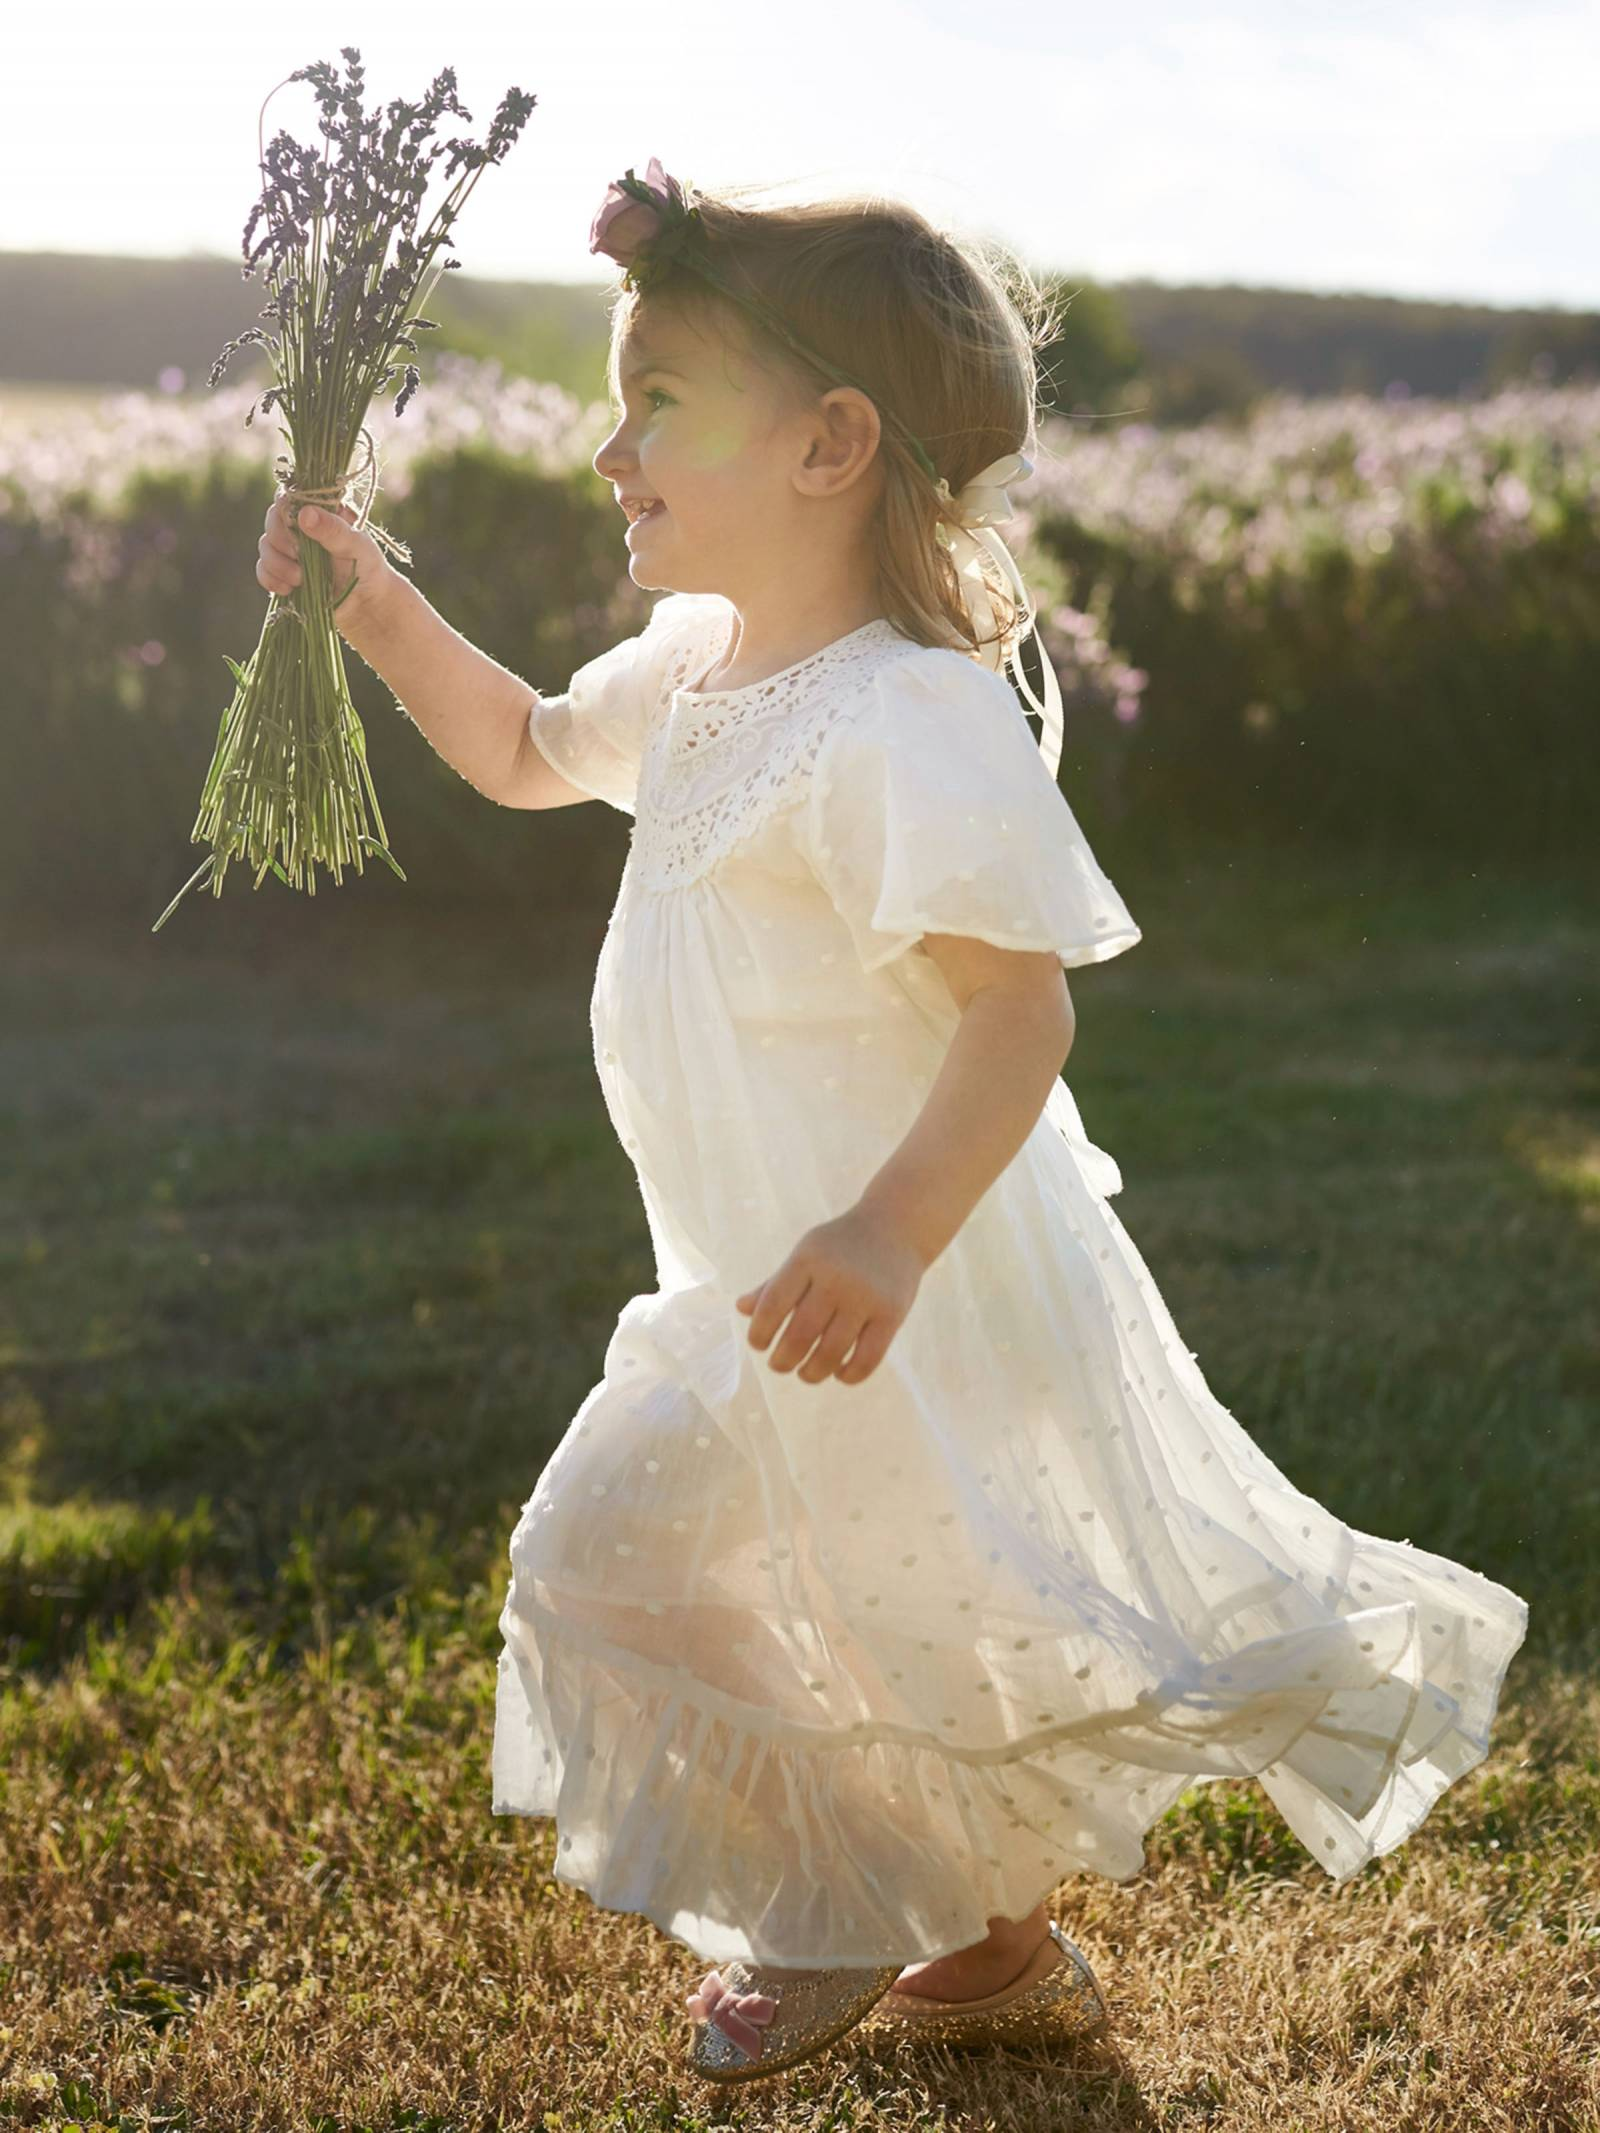 Flower girl running through a lavender field